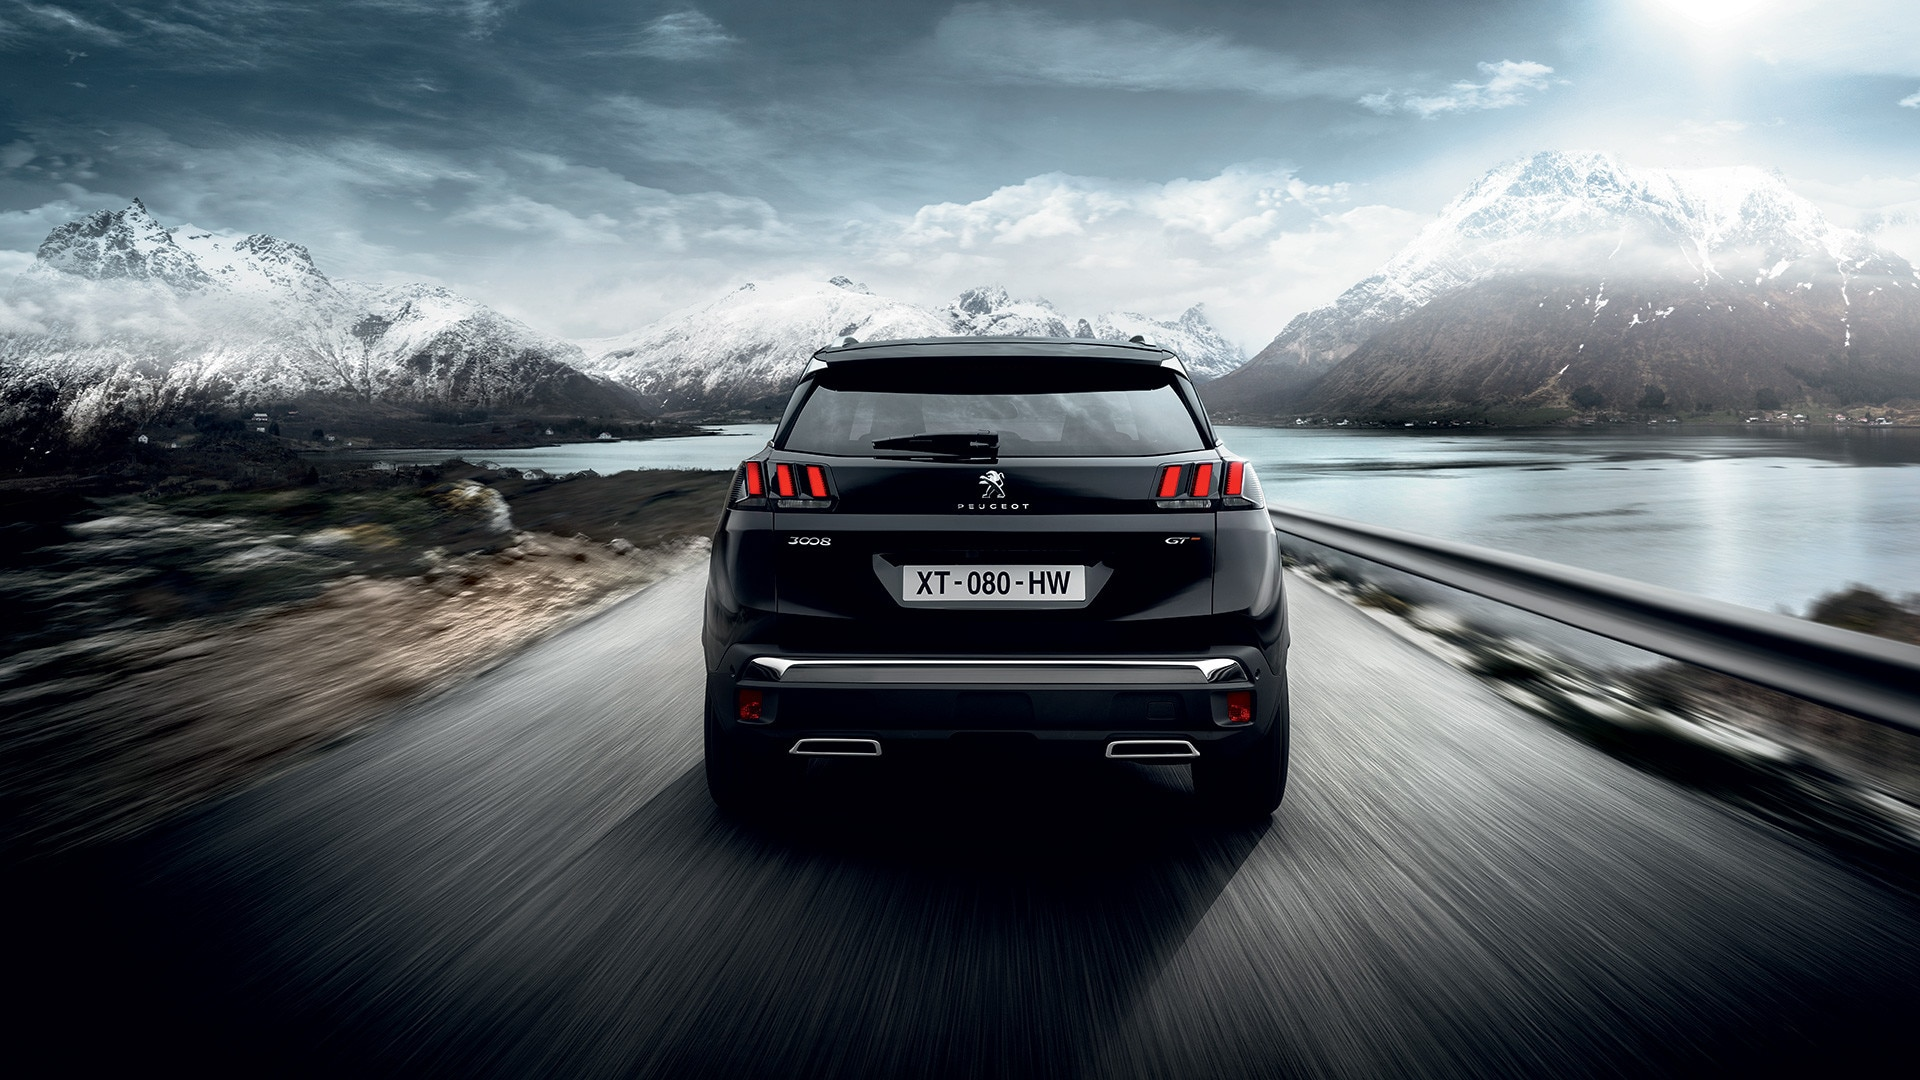 peugeot 3008 suv showroom gt test drive today. Black Bedroom Furniture Sets. Home Design Ideas